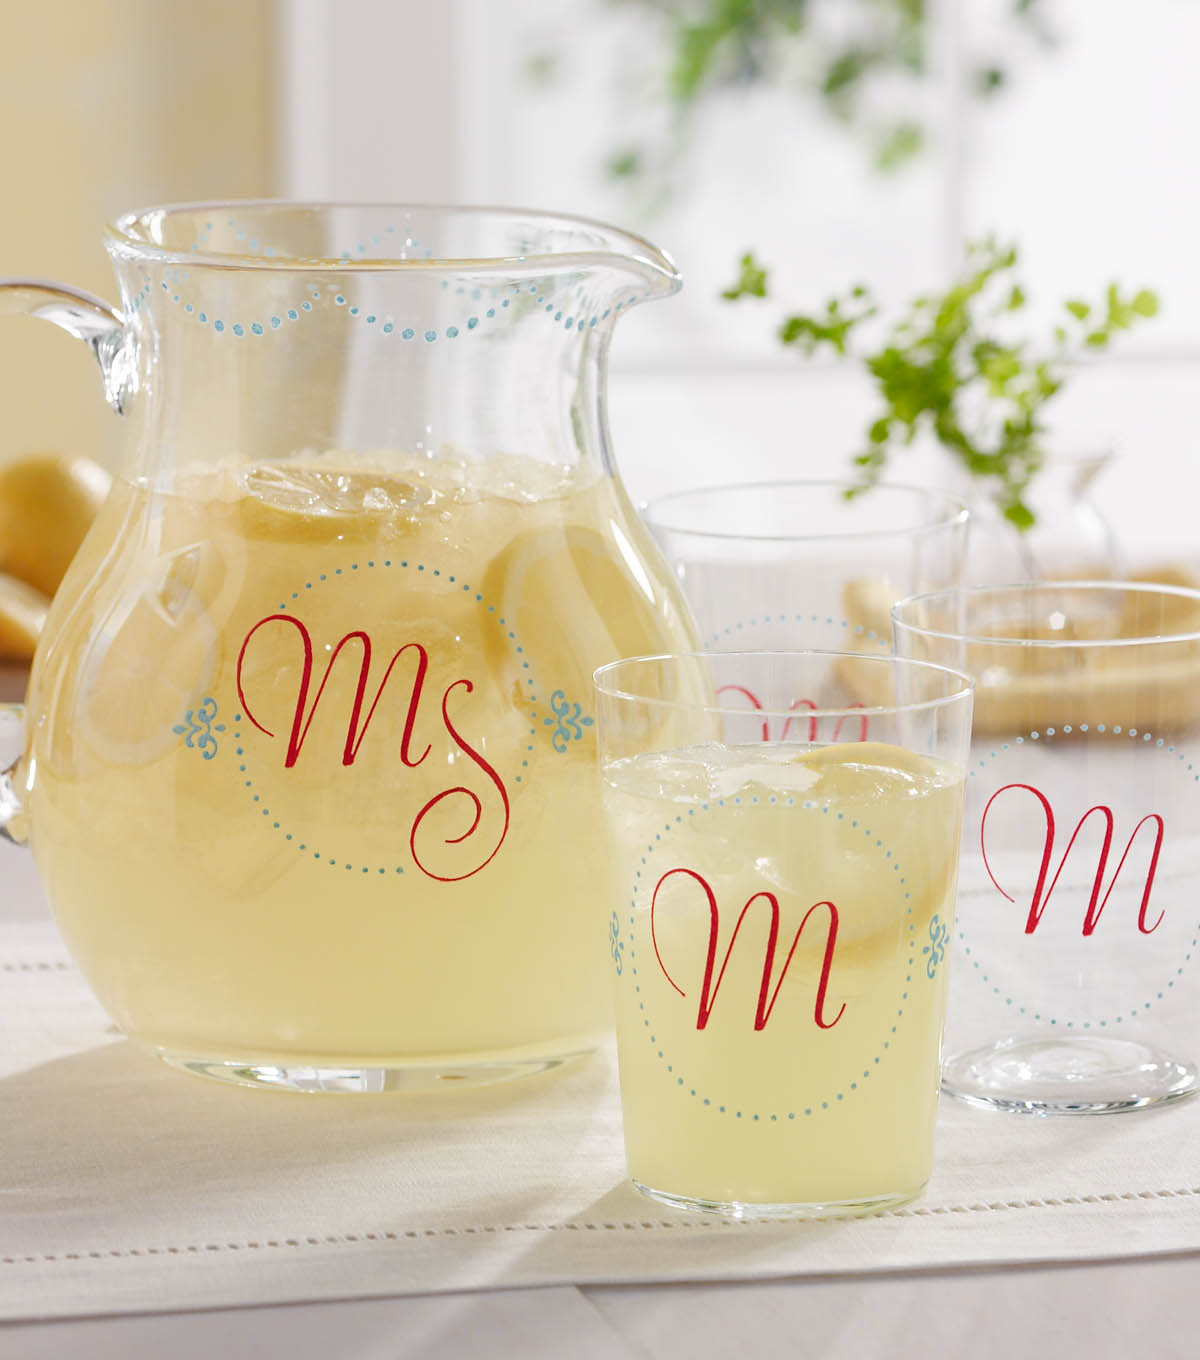 Elegant Monogramed Pitcher Set